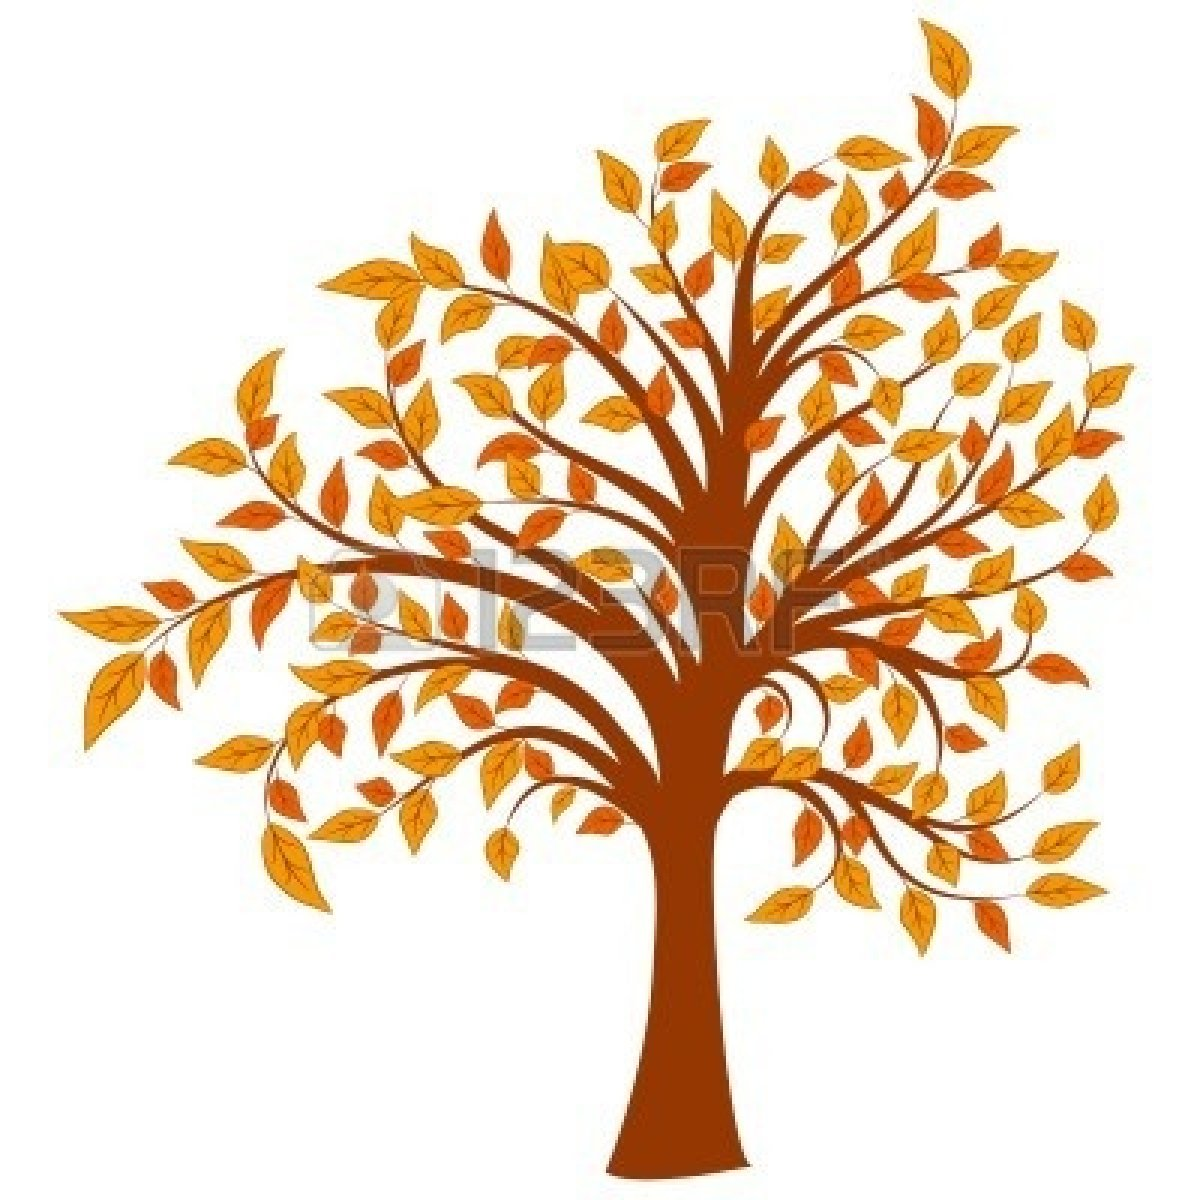 family tree clipart clipart best free family tree clipart designs free family tree clipart